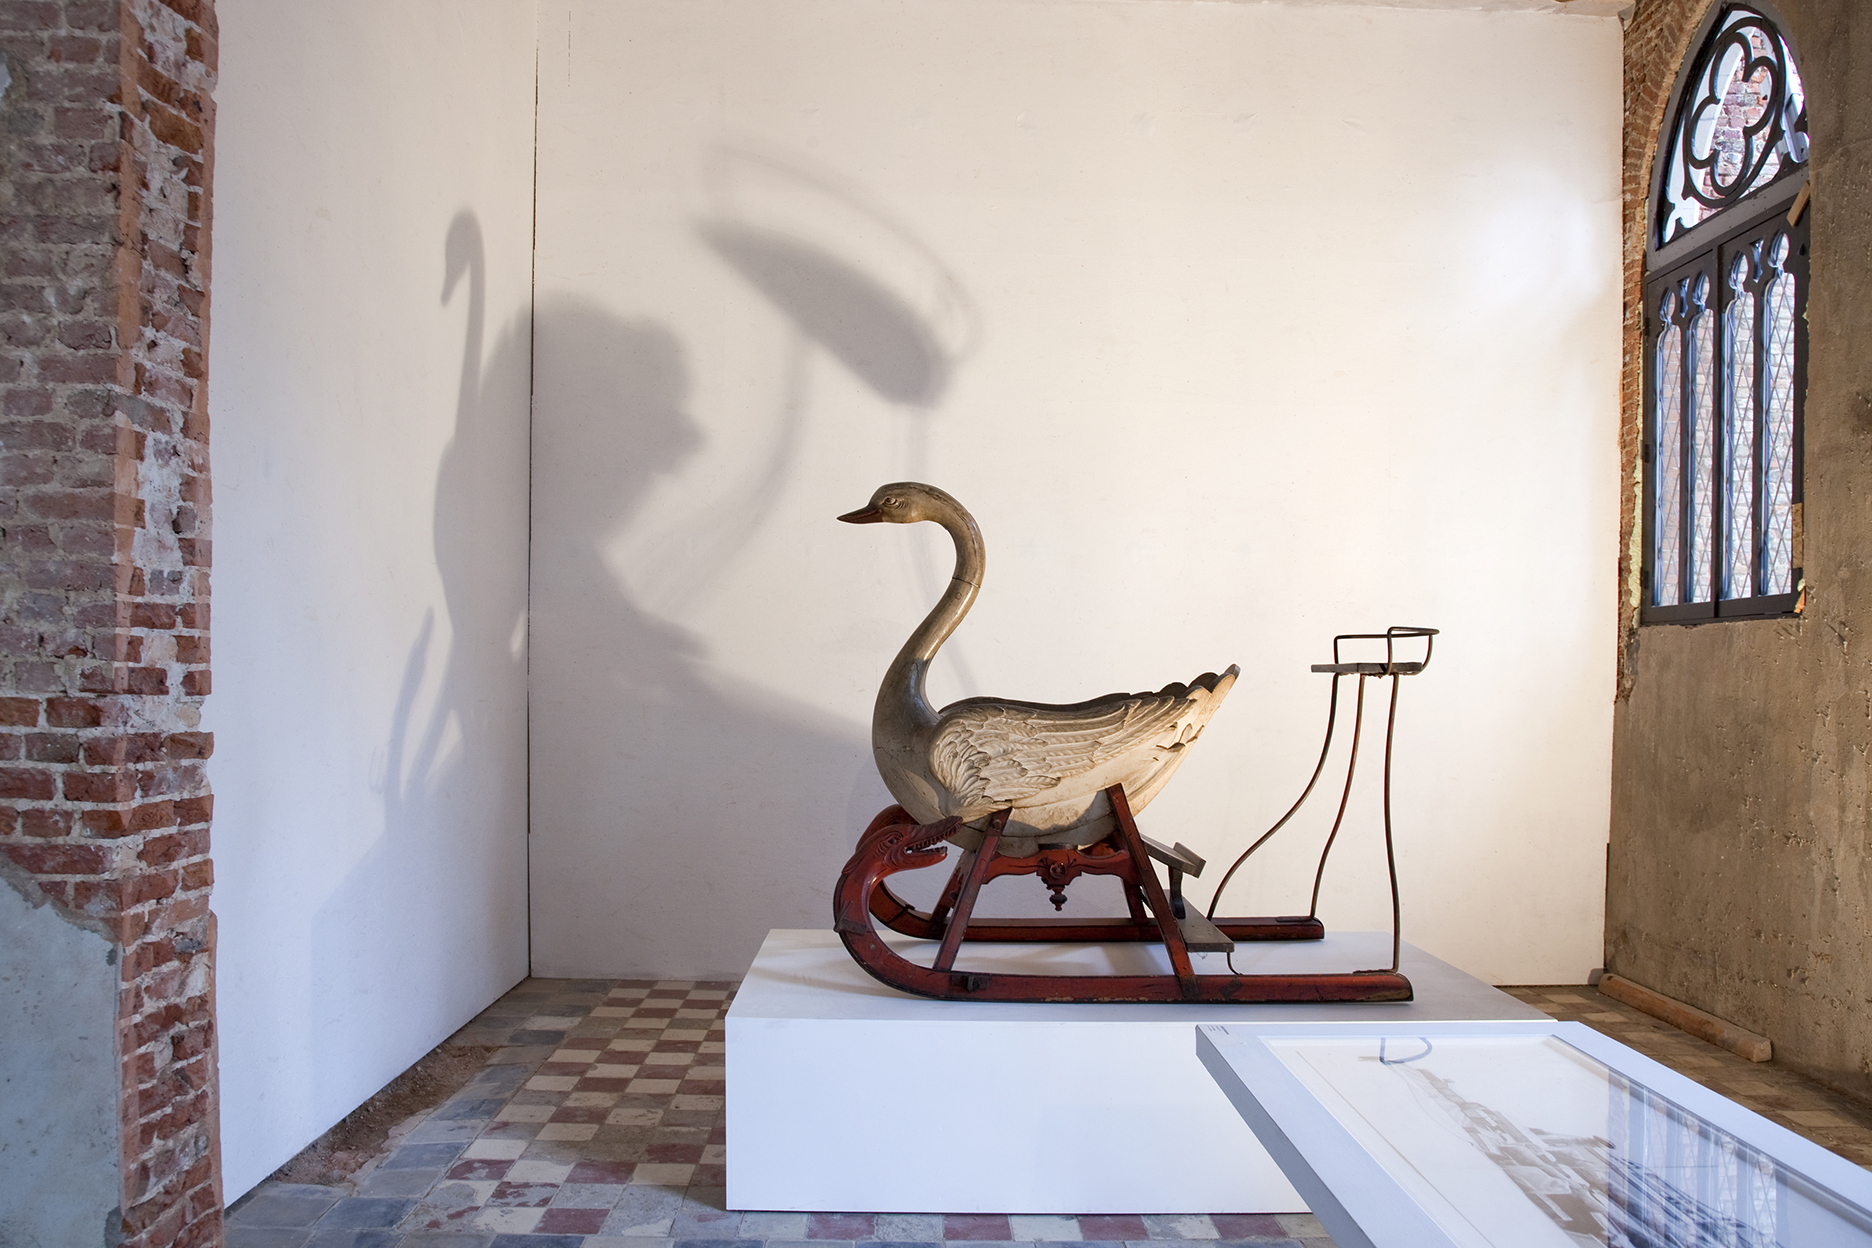 Jessie Brennan_Untitled (Sled) and The Cut_installation views in Coup de Ville.jpg